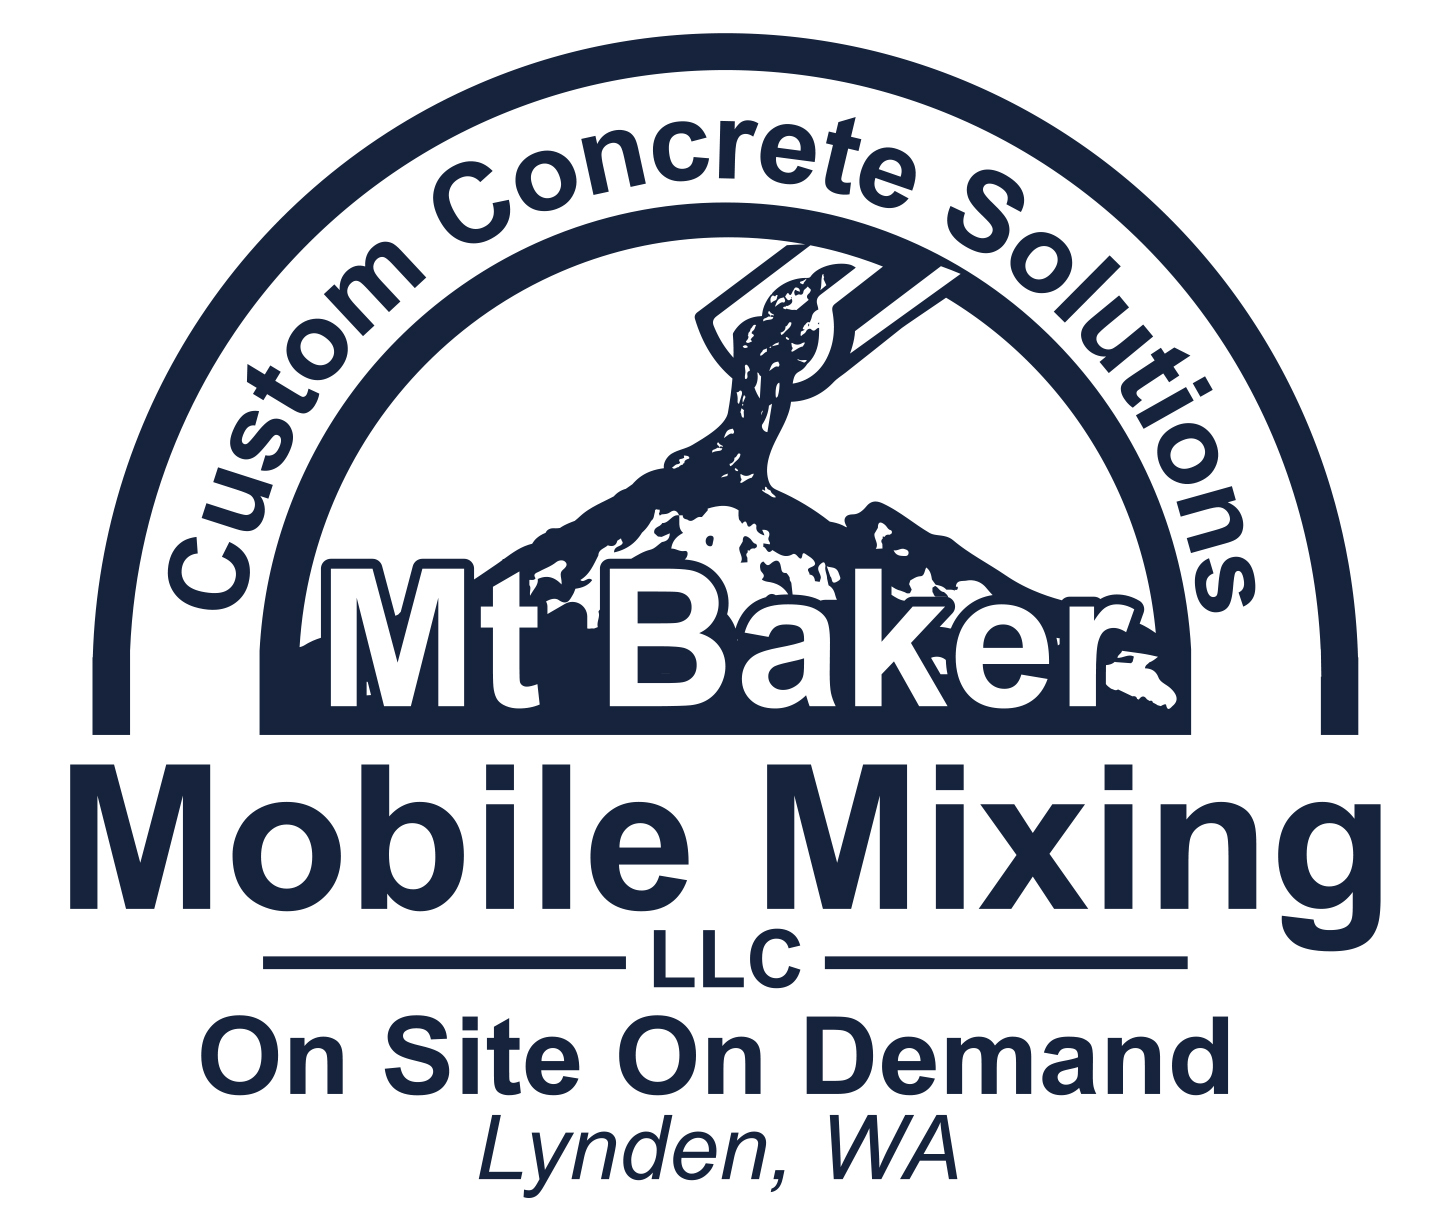 Mt Baker Mobile Mixing